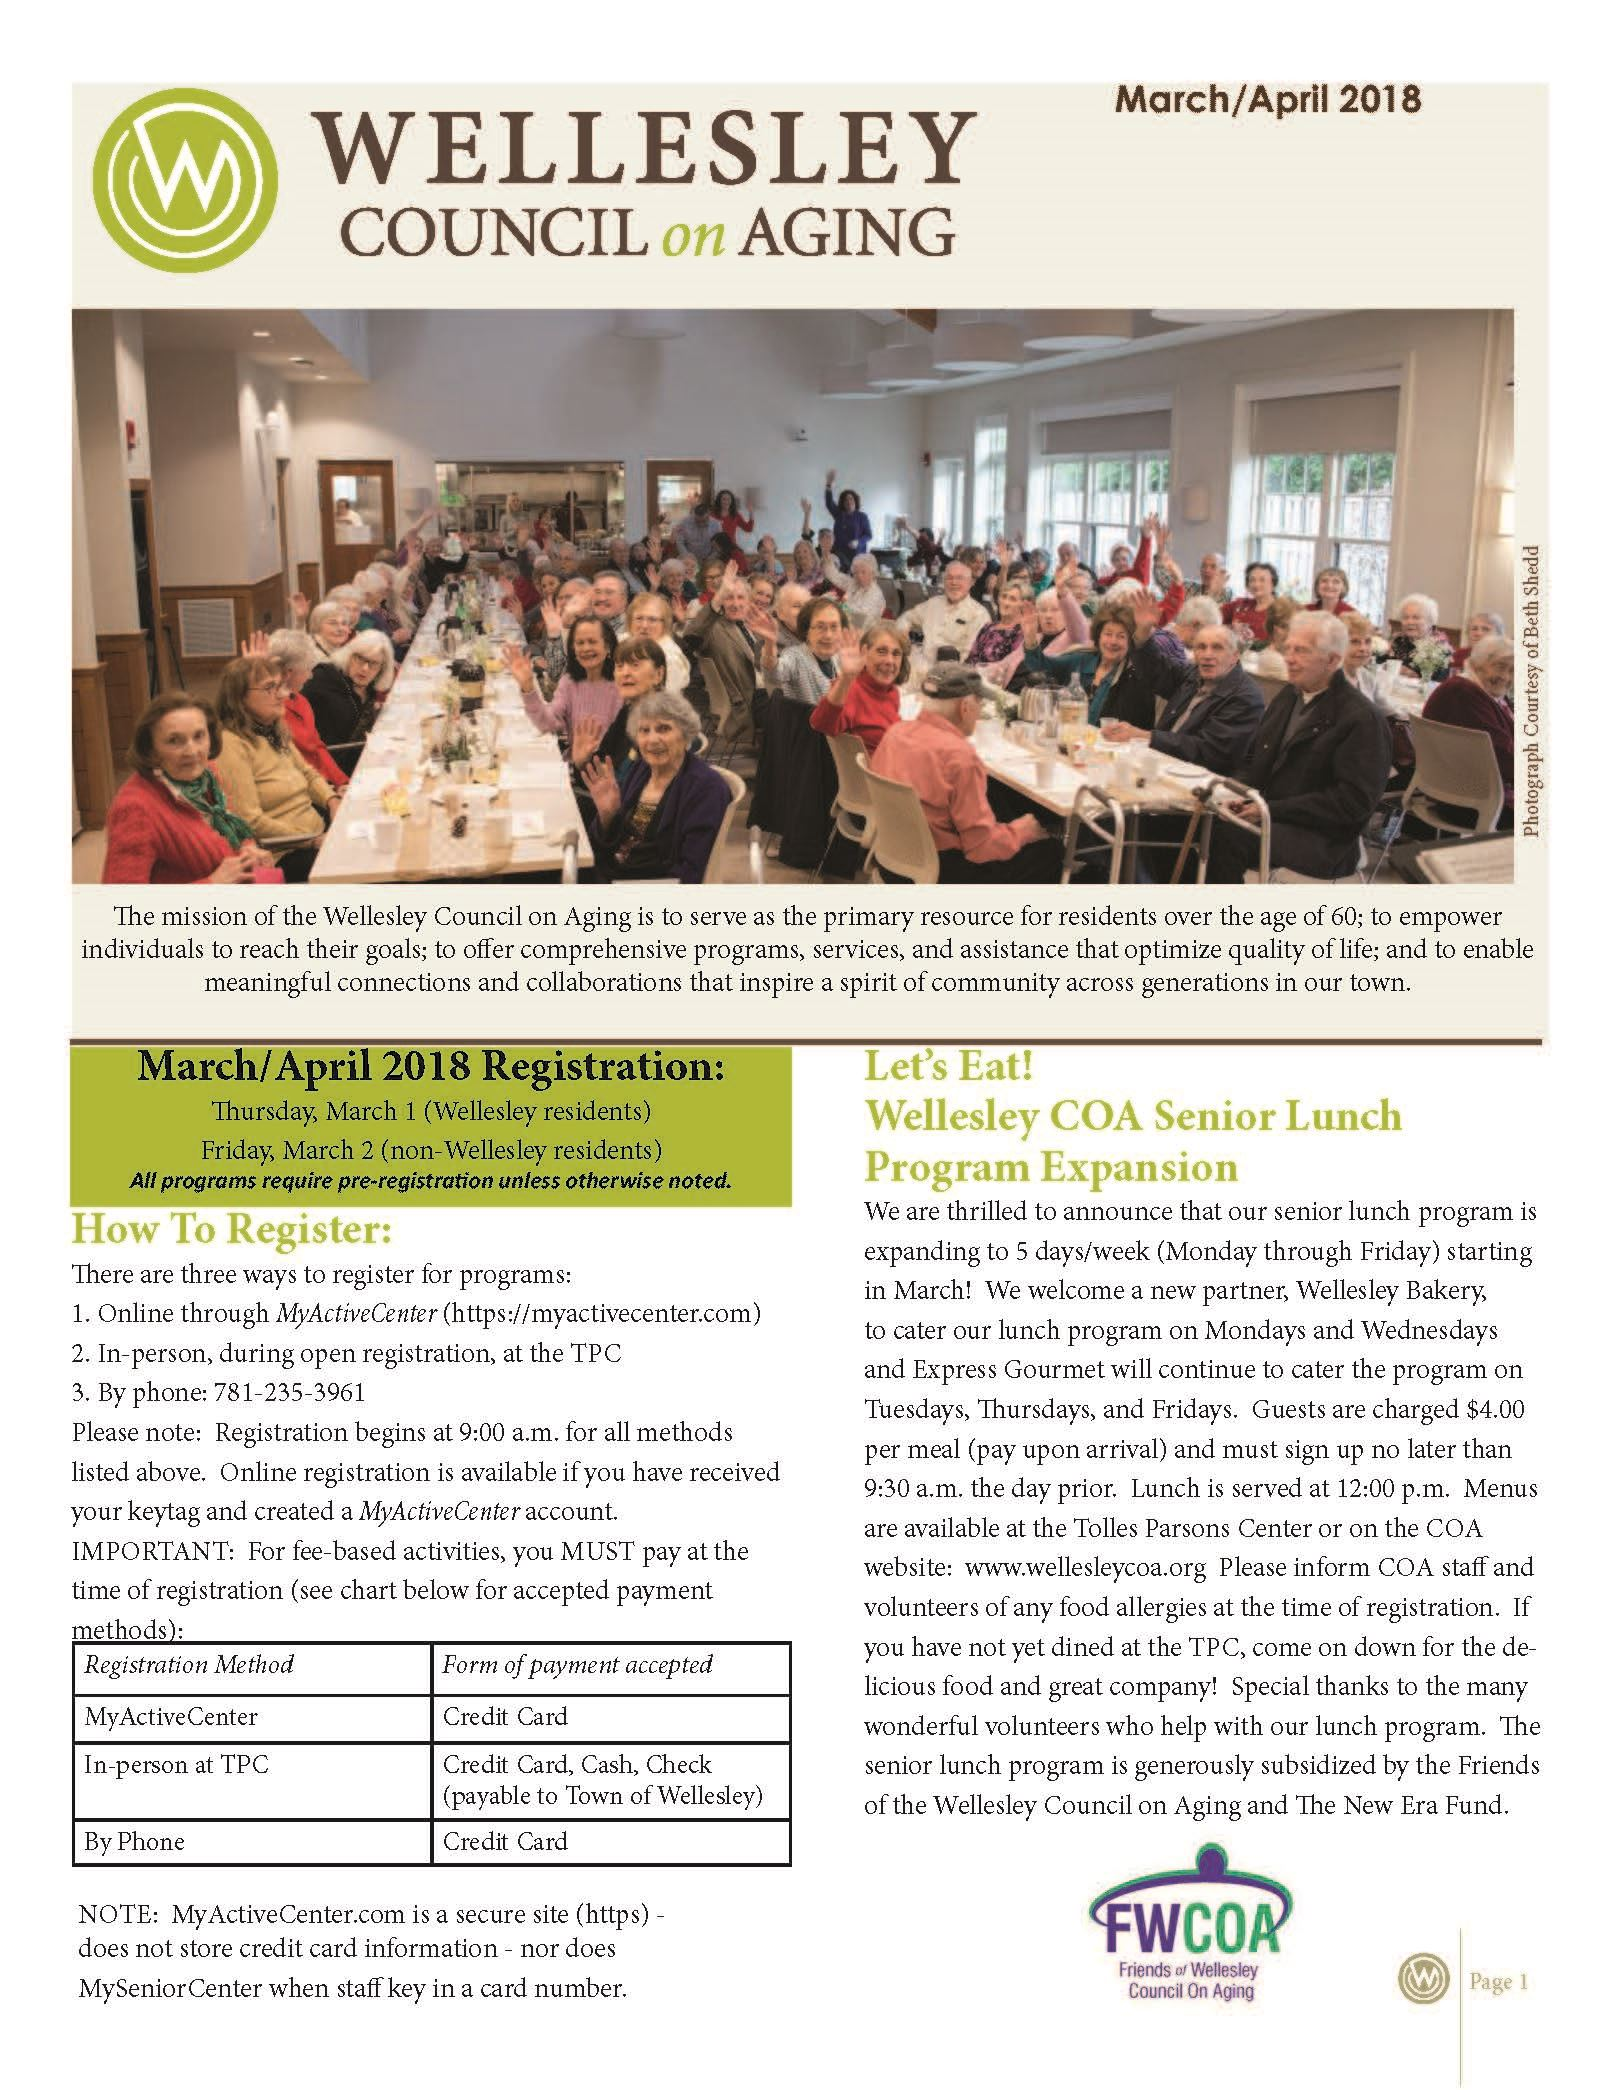 March April 2018 Newsletter Front Cover